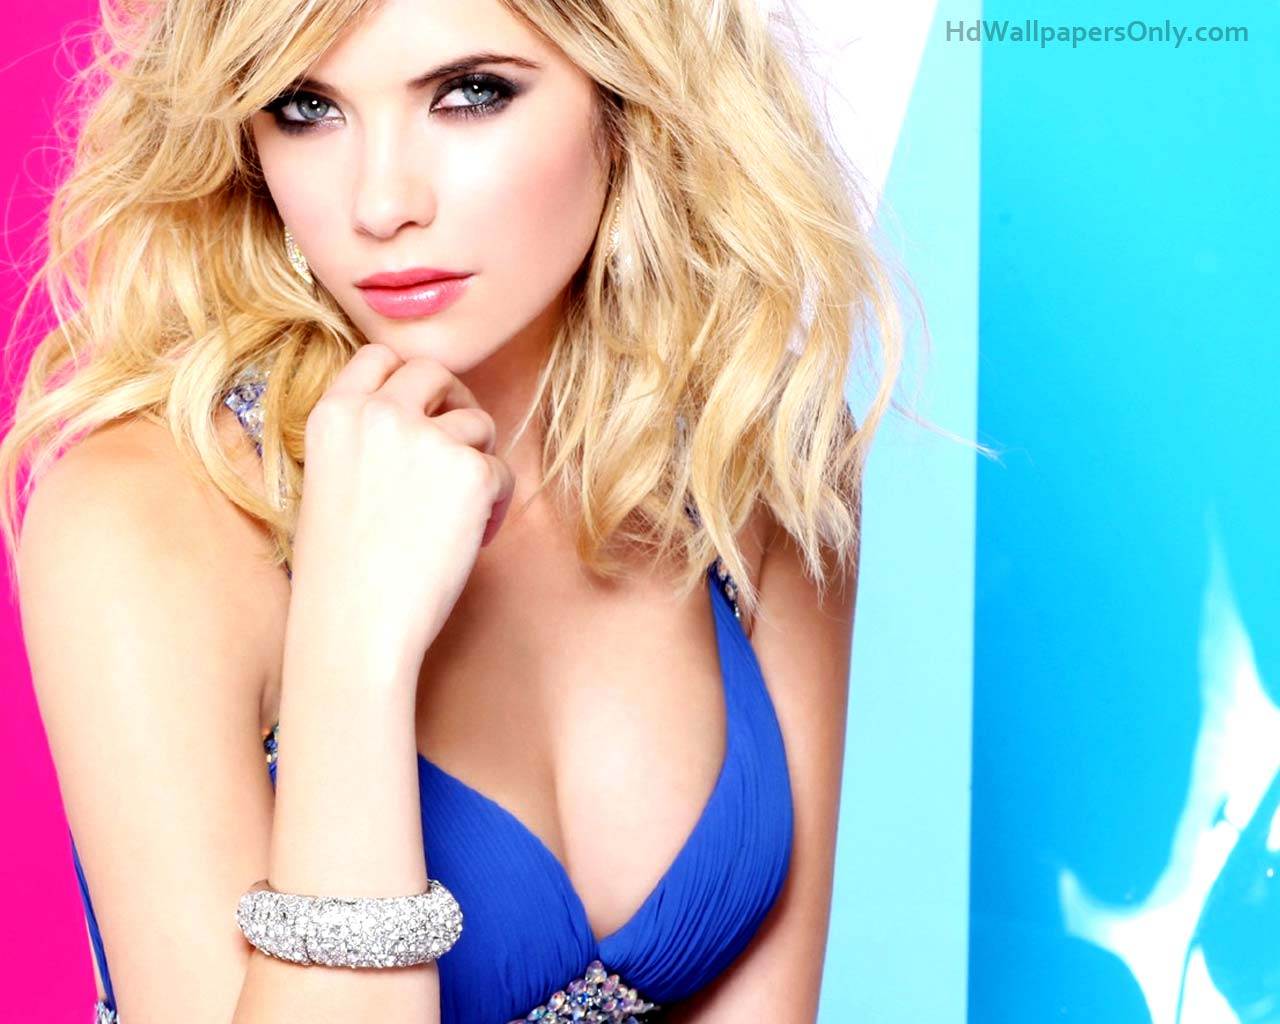 Ashley benson hot